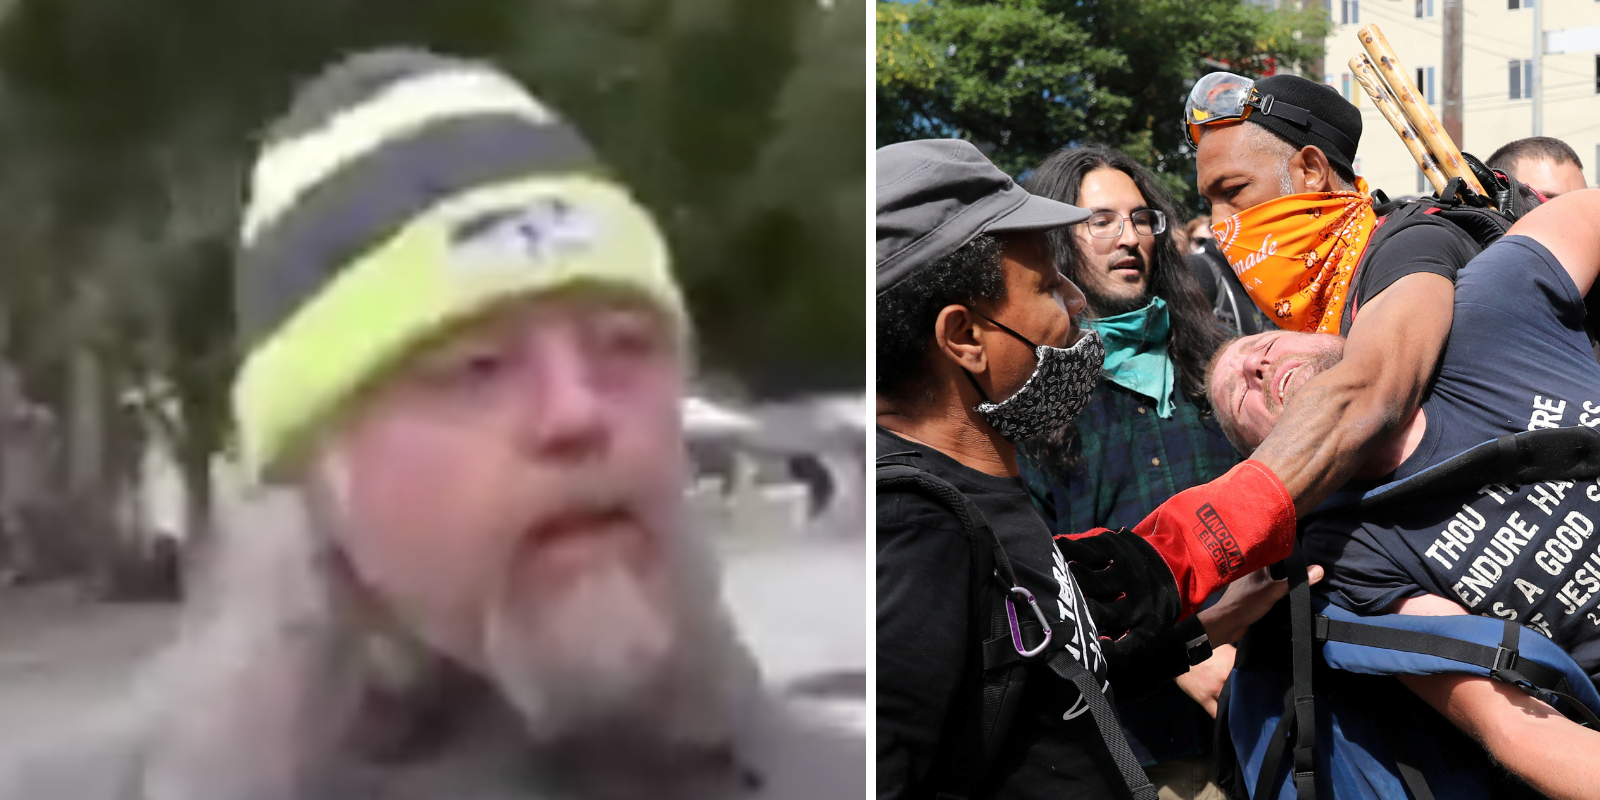 'I don't want to get killed by these Antifa people': Seattle resident speaks out about life in occupied zone